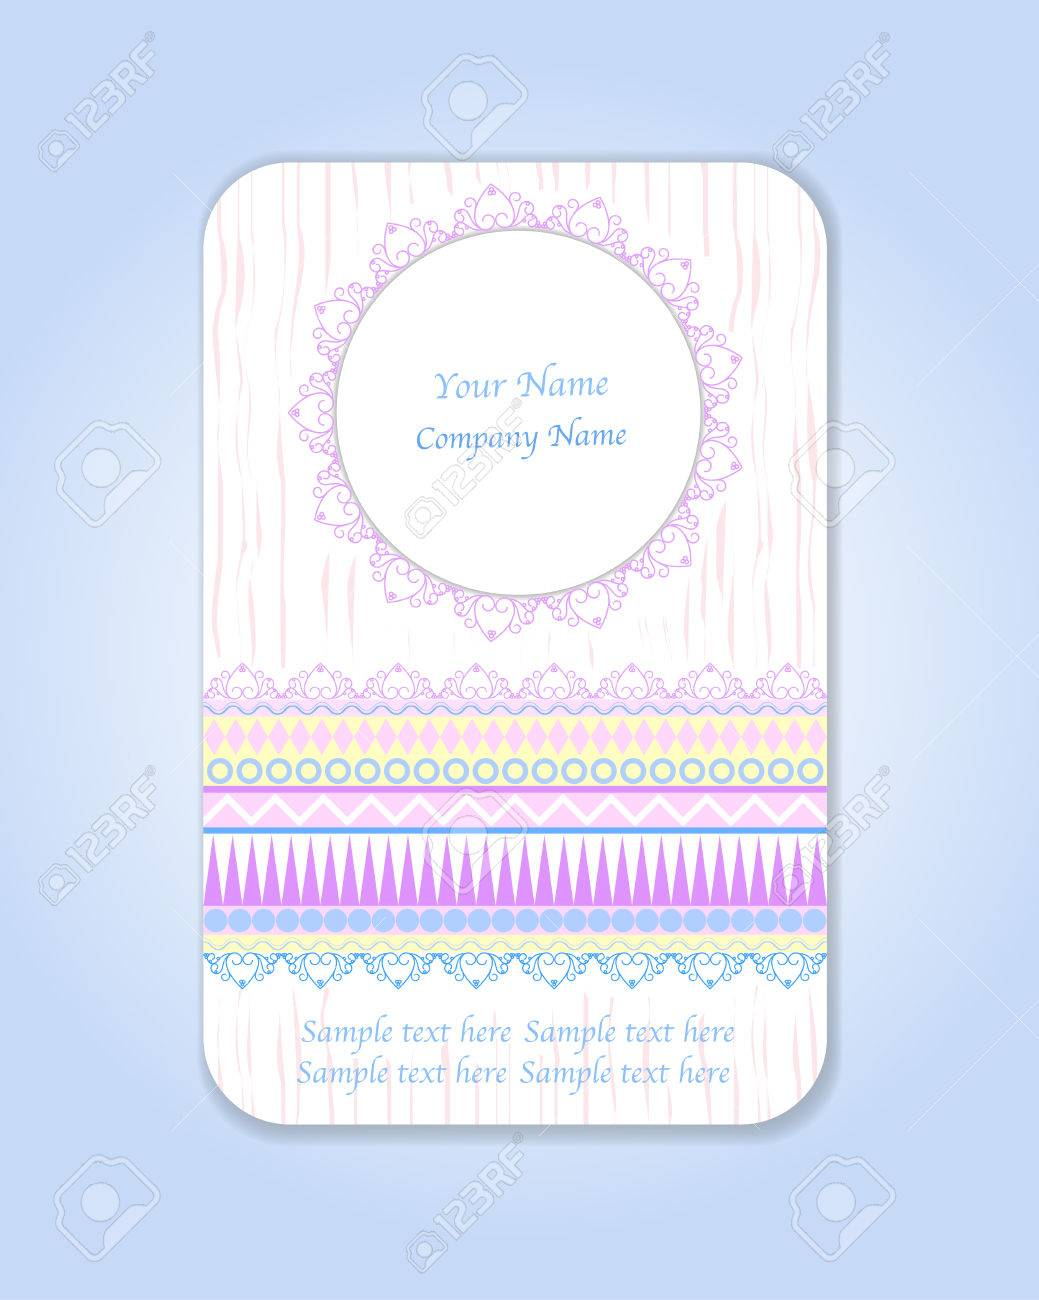 Vector design template ideal for wedding ethnic vintage patterns ideal for wedding ethnic vintage patterns tribal business cards save the date baby shower mothers day valentines day birthday cards invitations stopboris Choice Image